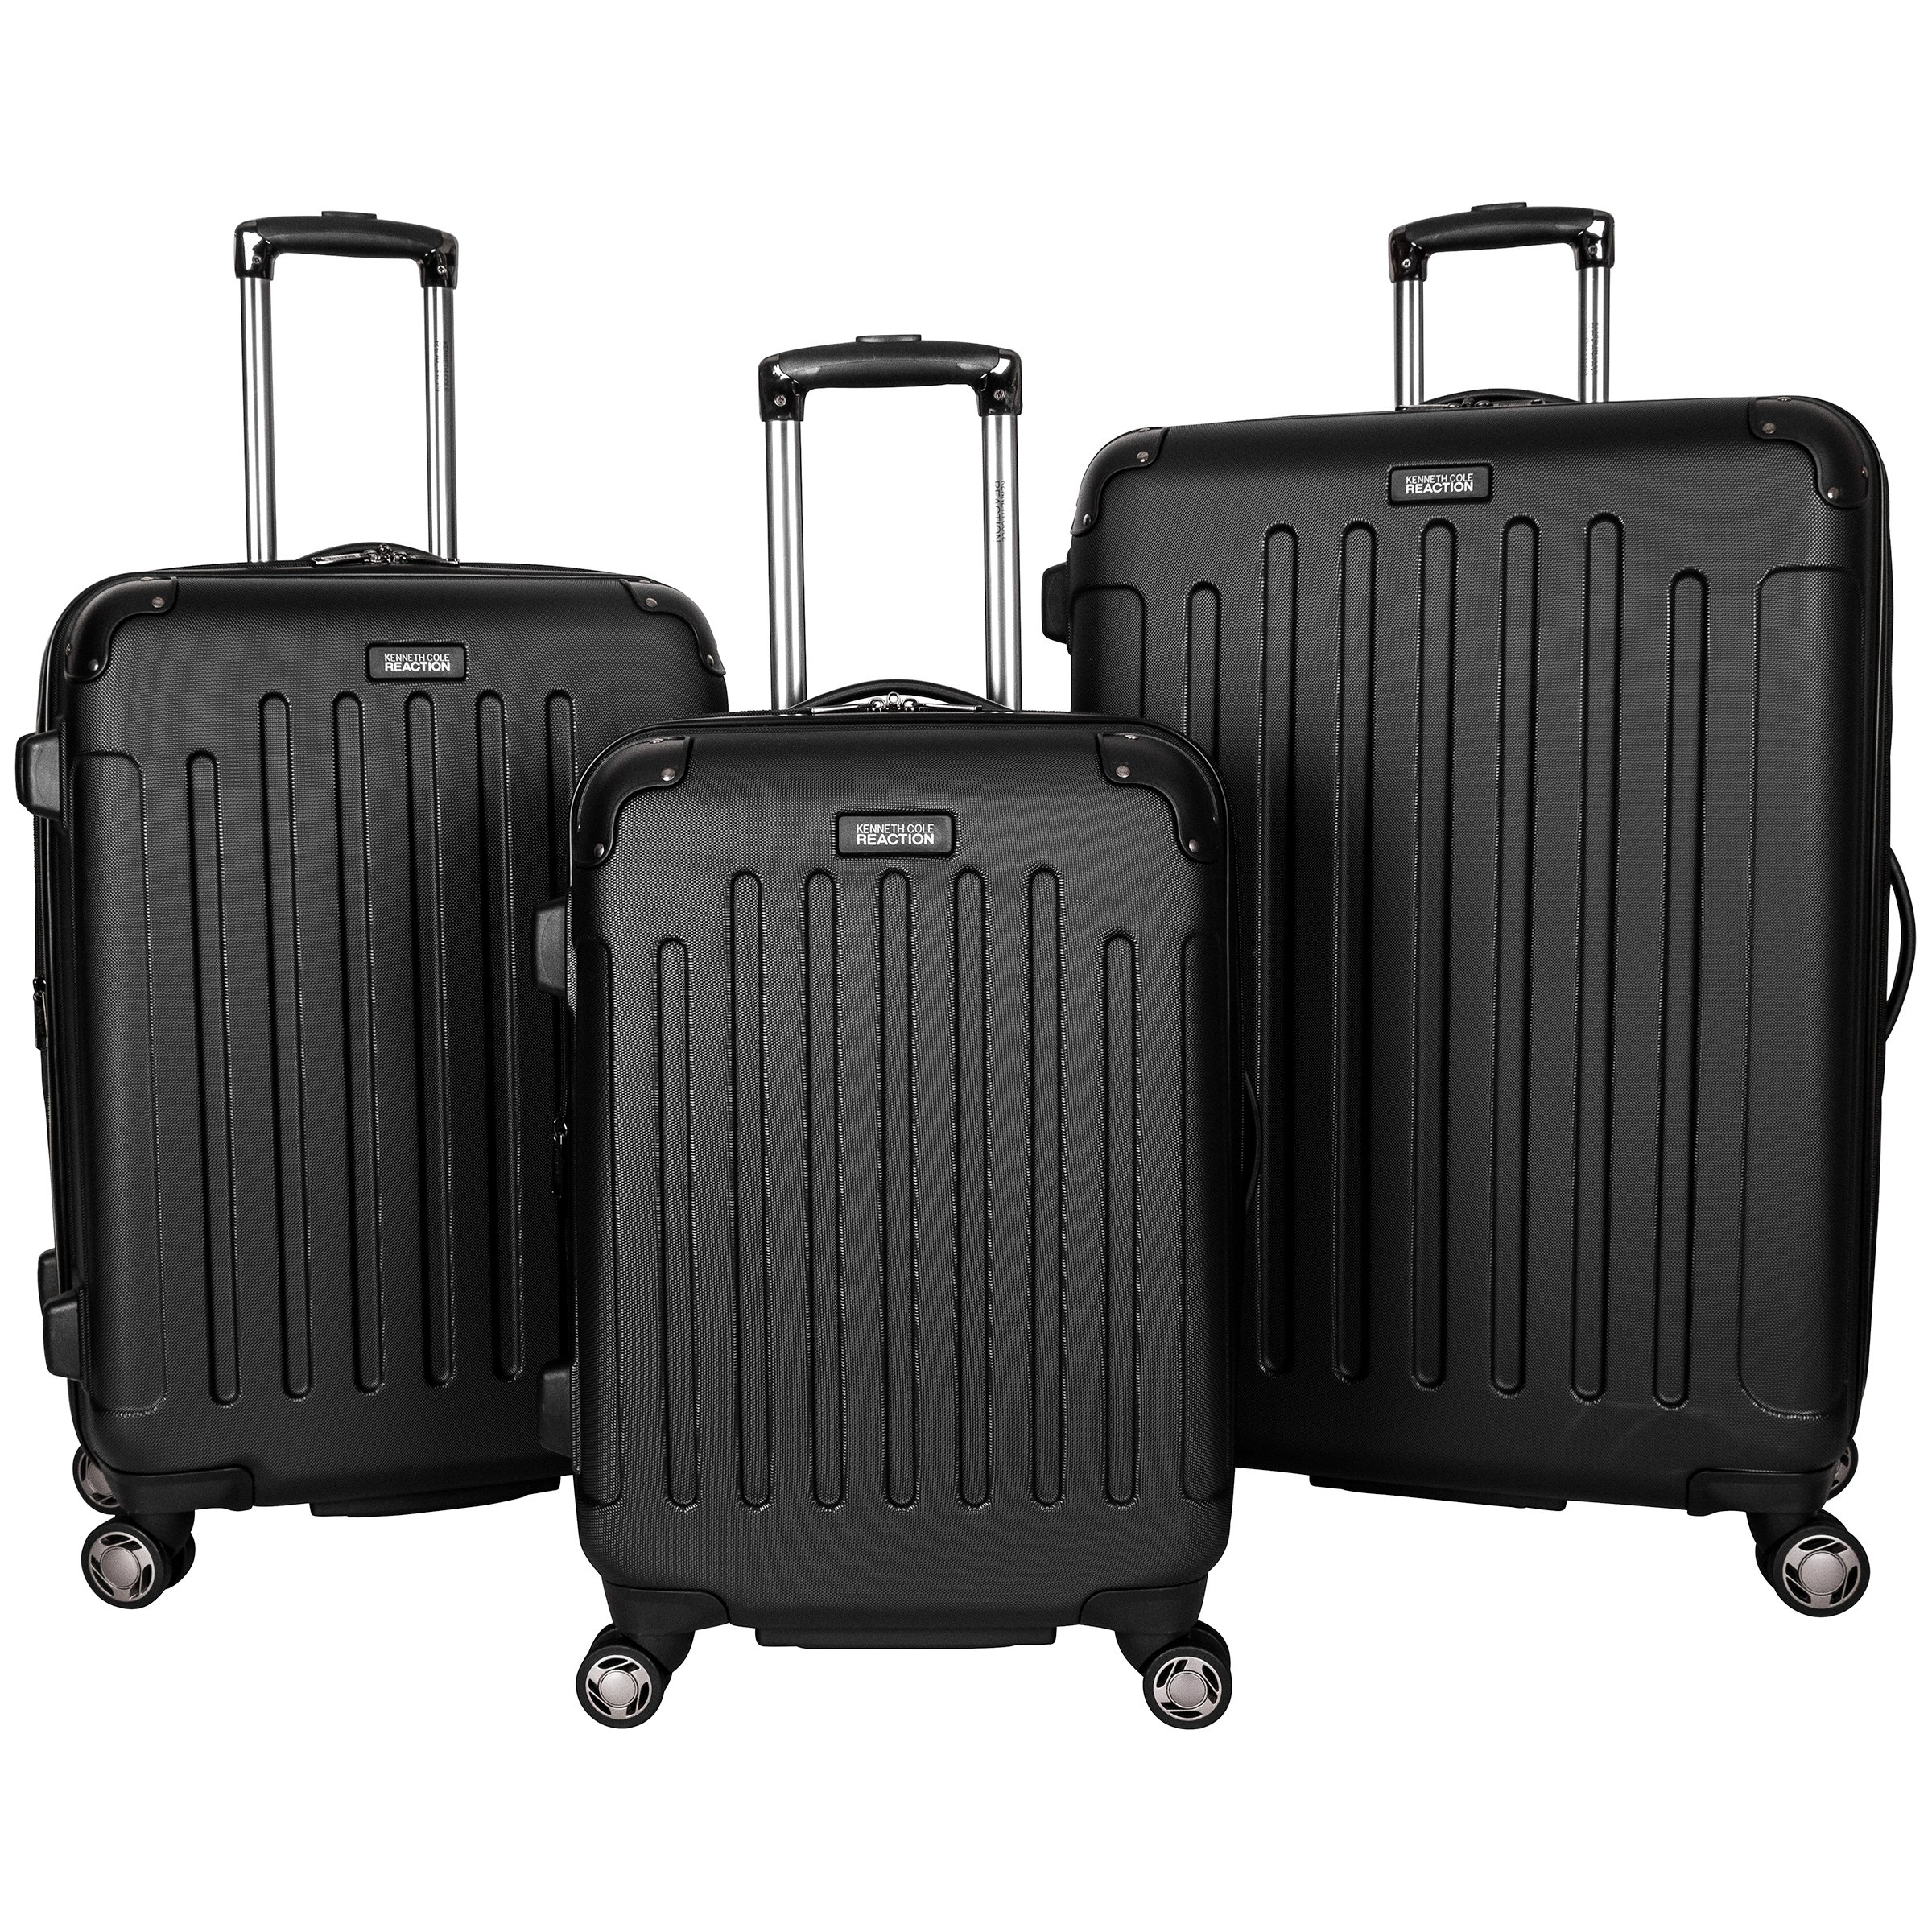 Kenneth Cole Reaction Renegade 8-Wheel Hardside Expandable 3-Piece Set: 20'' Carry-On, 24'', 28'' Luggage, Black